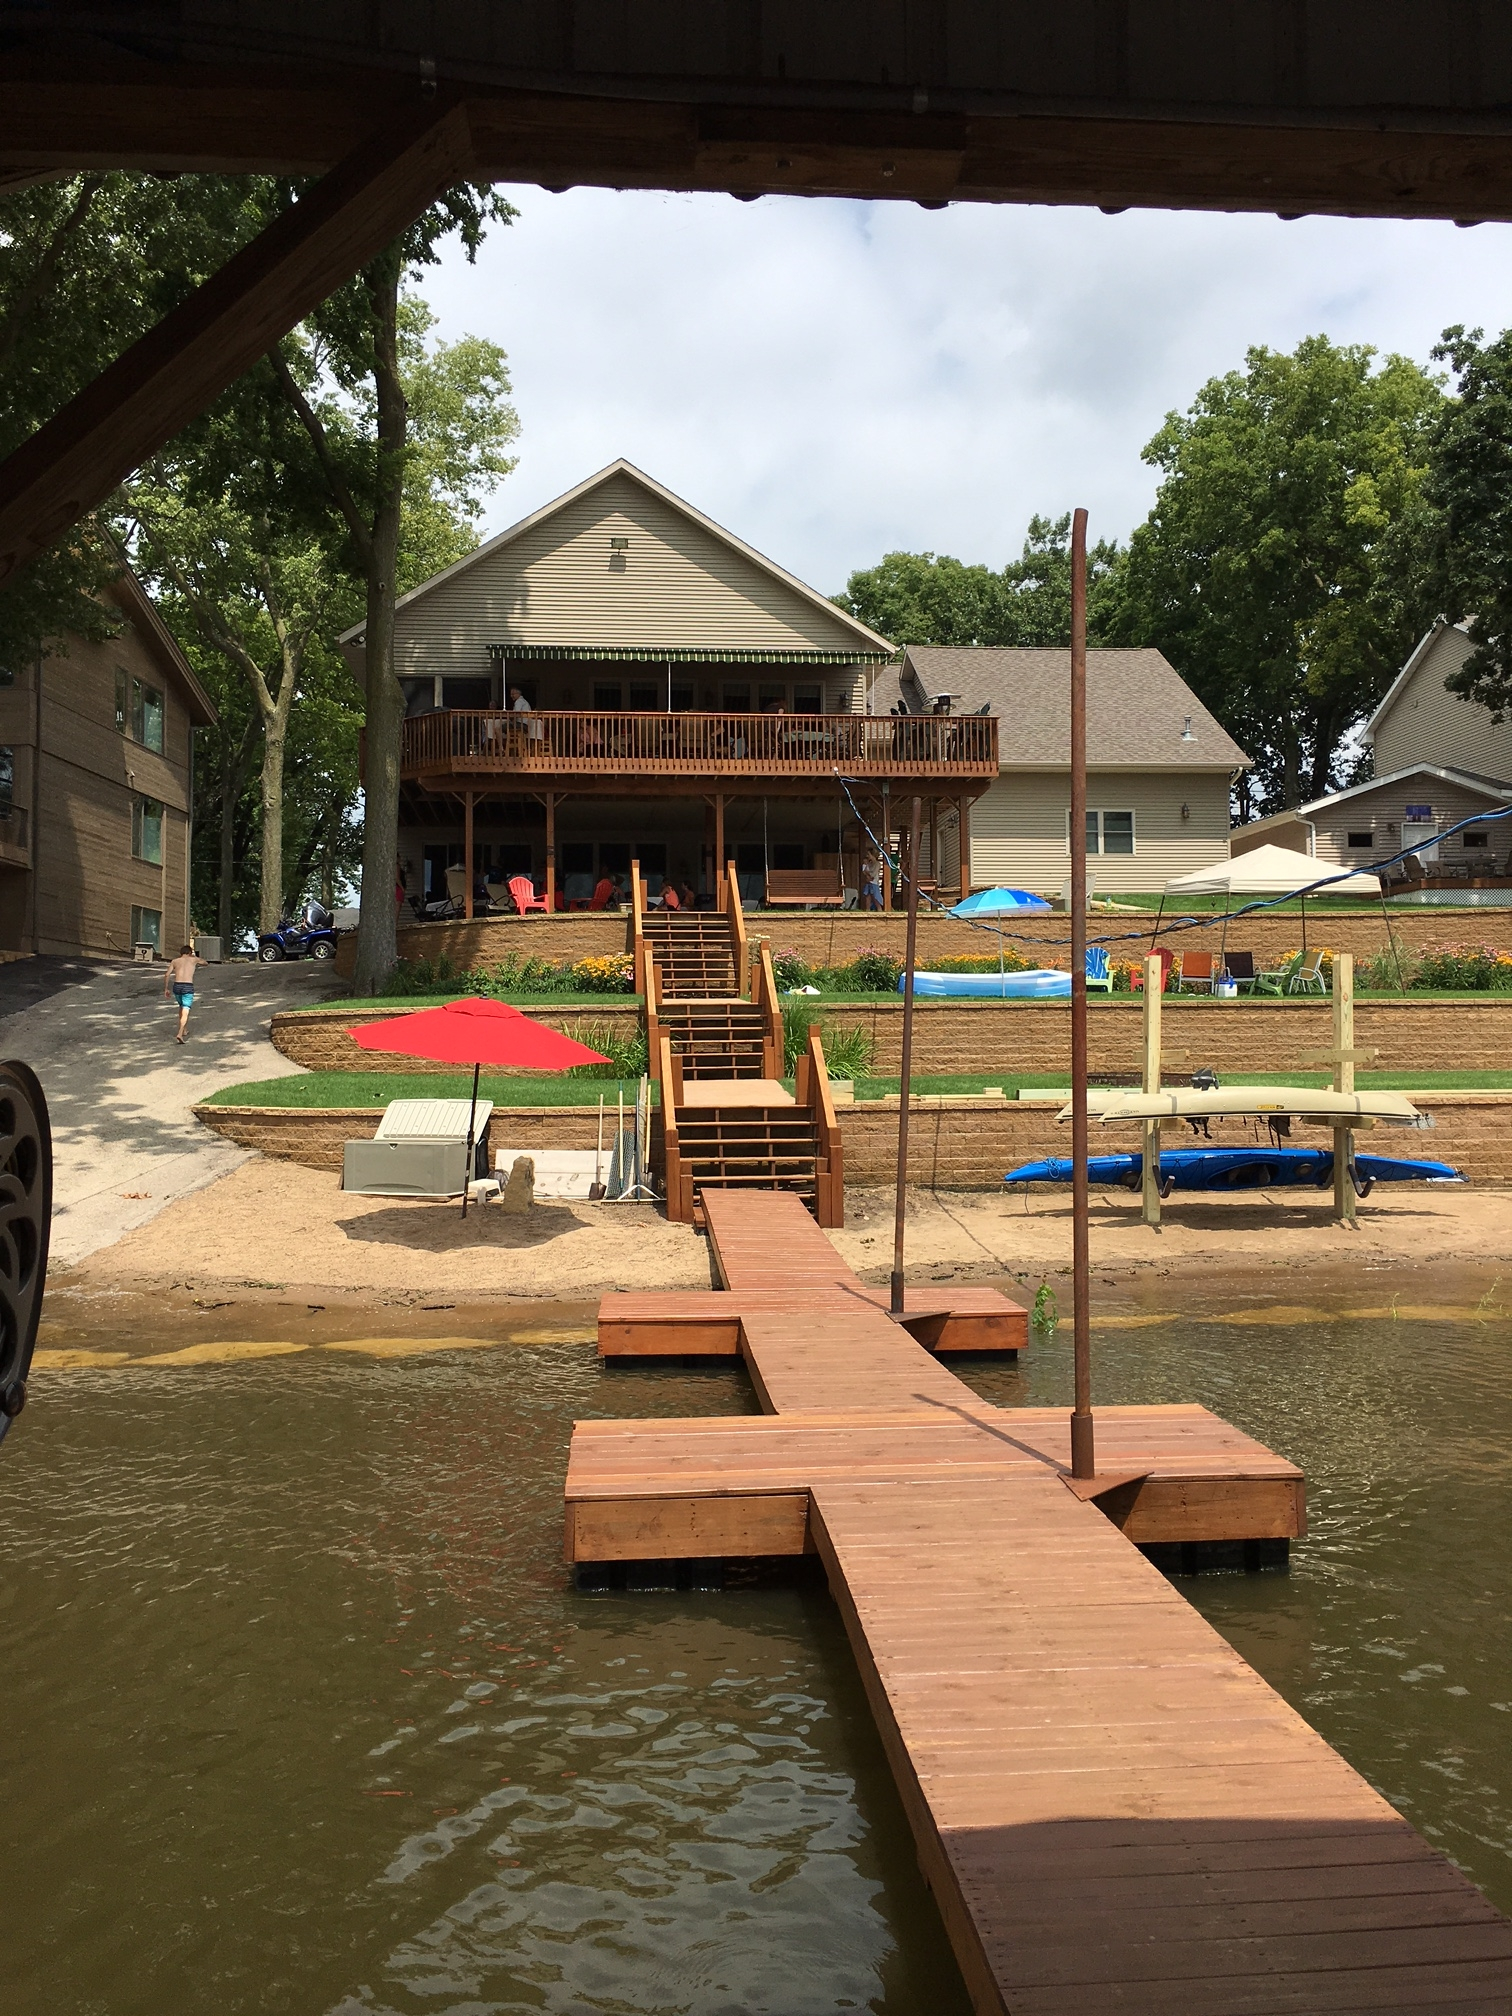 A view of Ted and Carol's house from the dock.